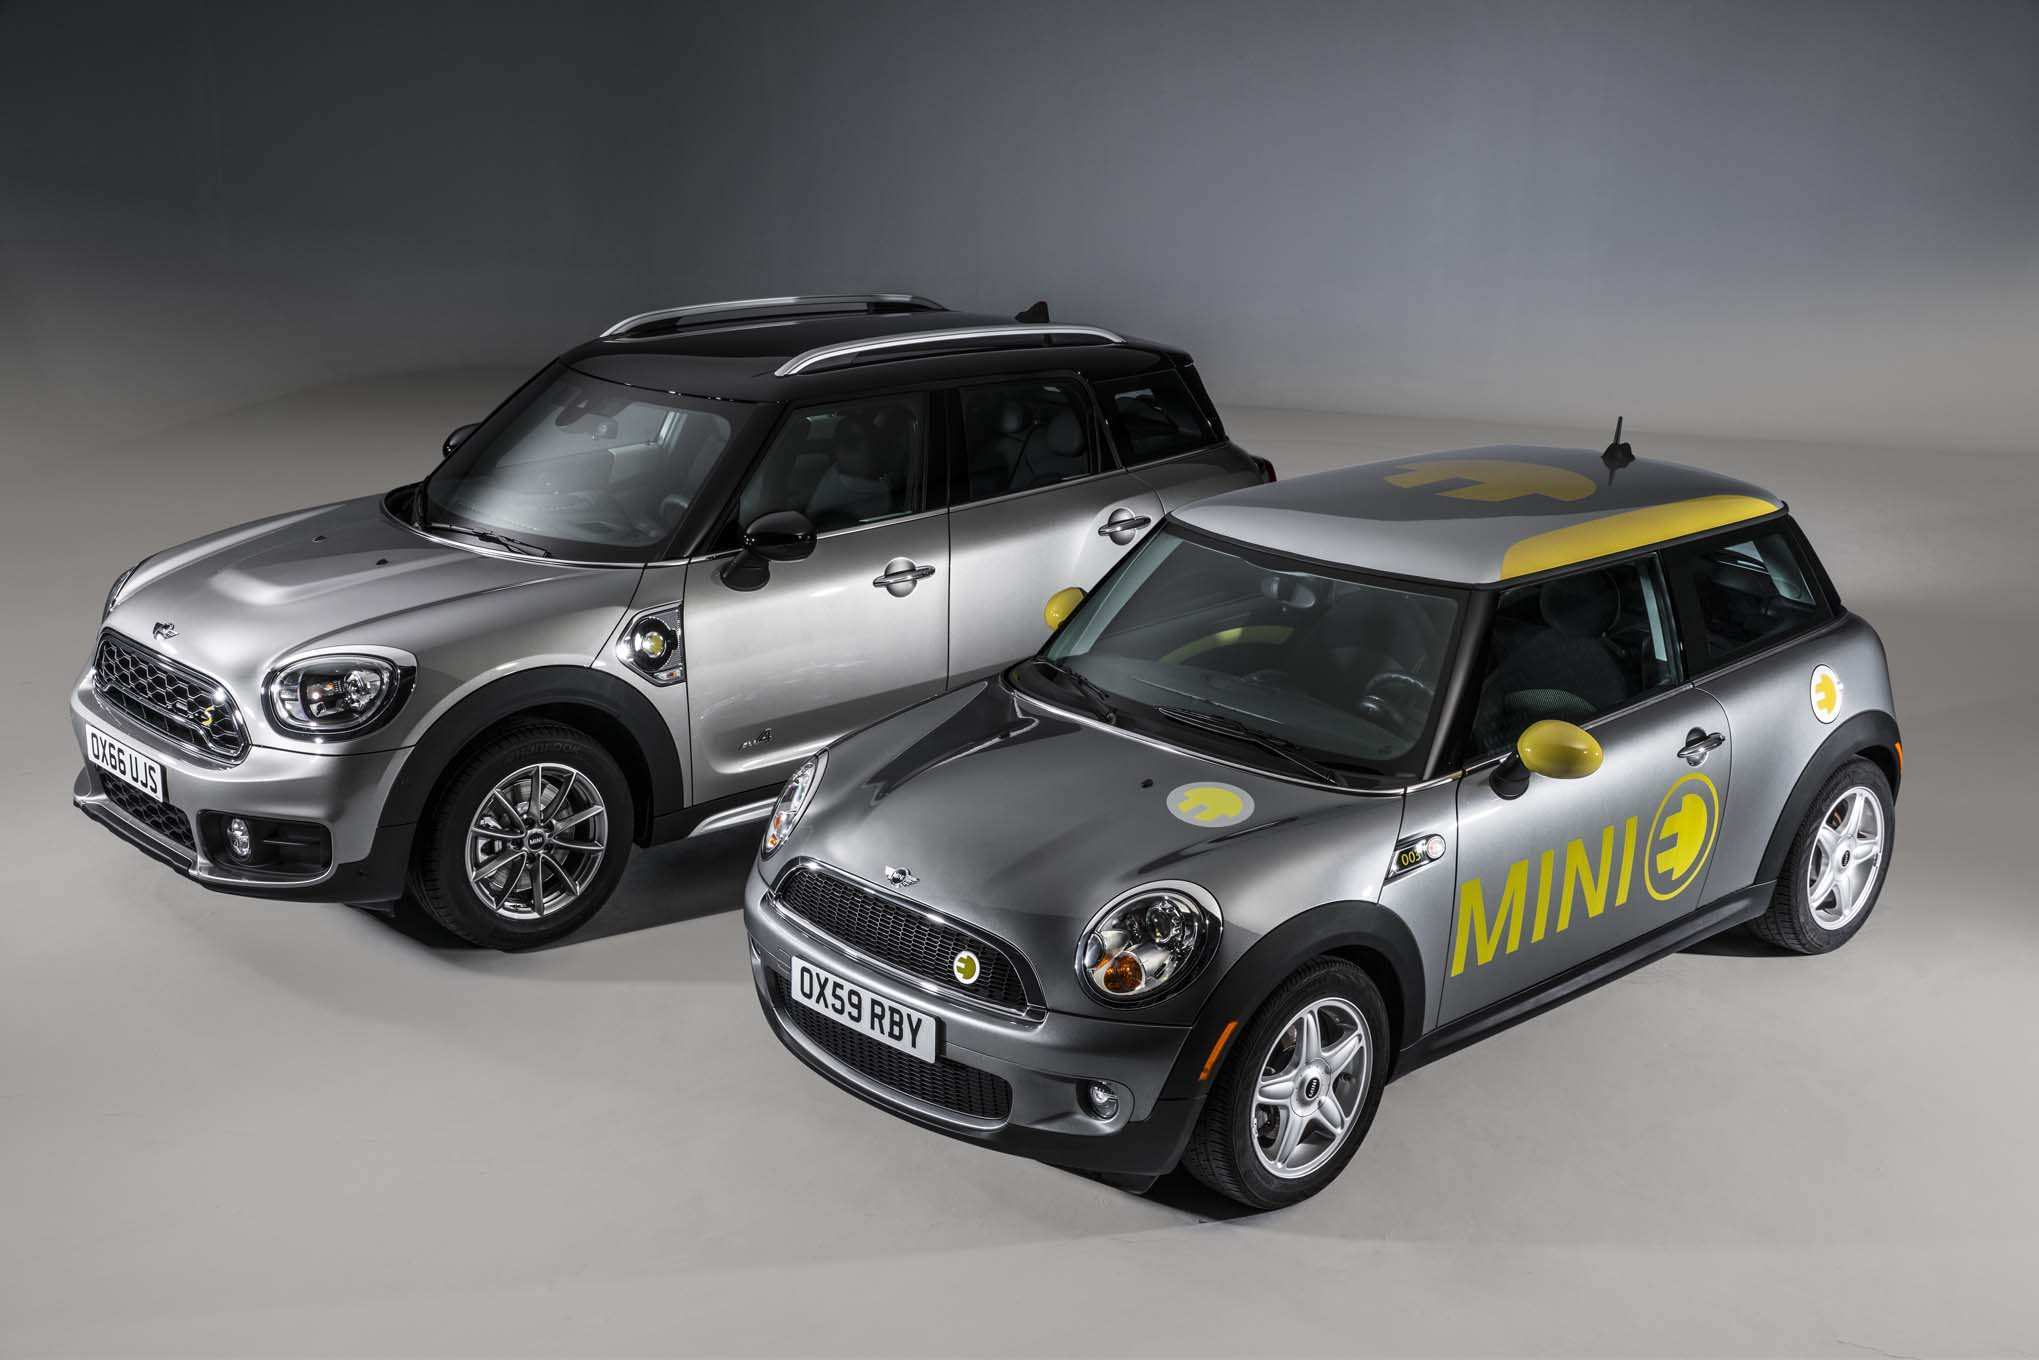 61 All New 2019 Mini E Countryman Redesign with 2019 Mini E Countryman